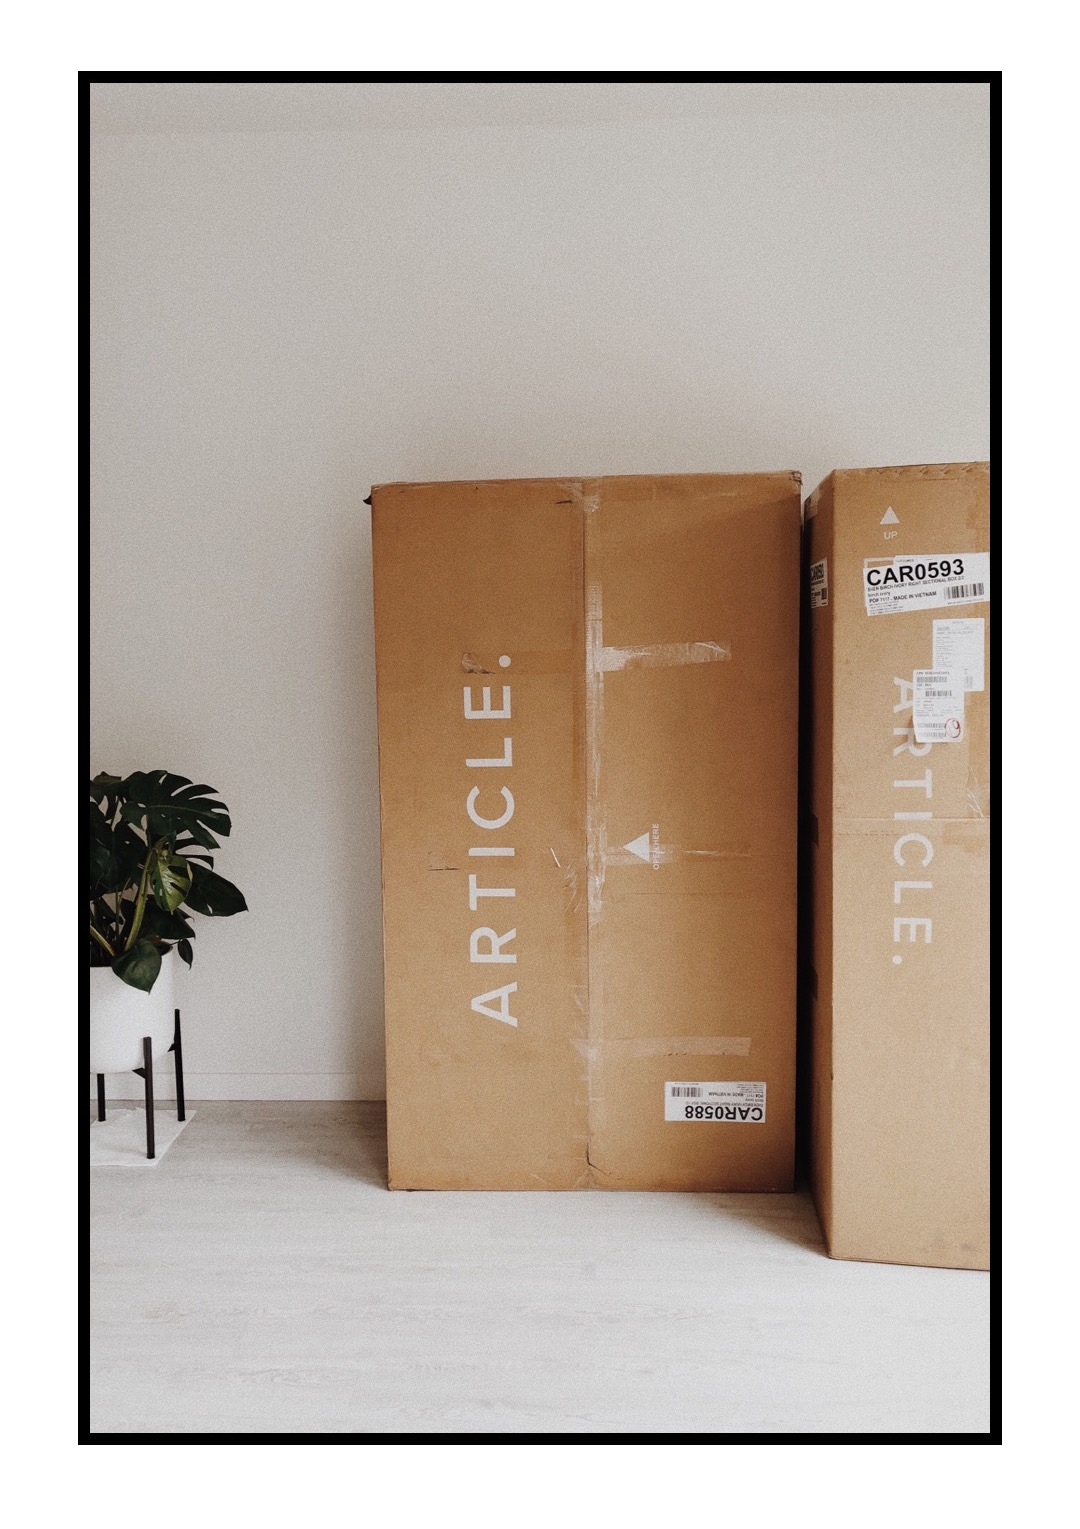 Article Sven Sectional Sofa Birch Ivory Unboxing Review - Love, Minna